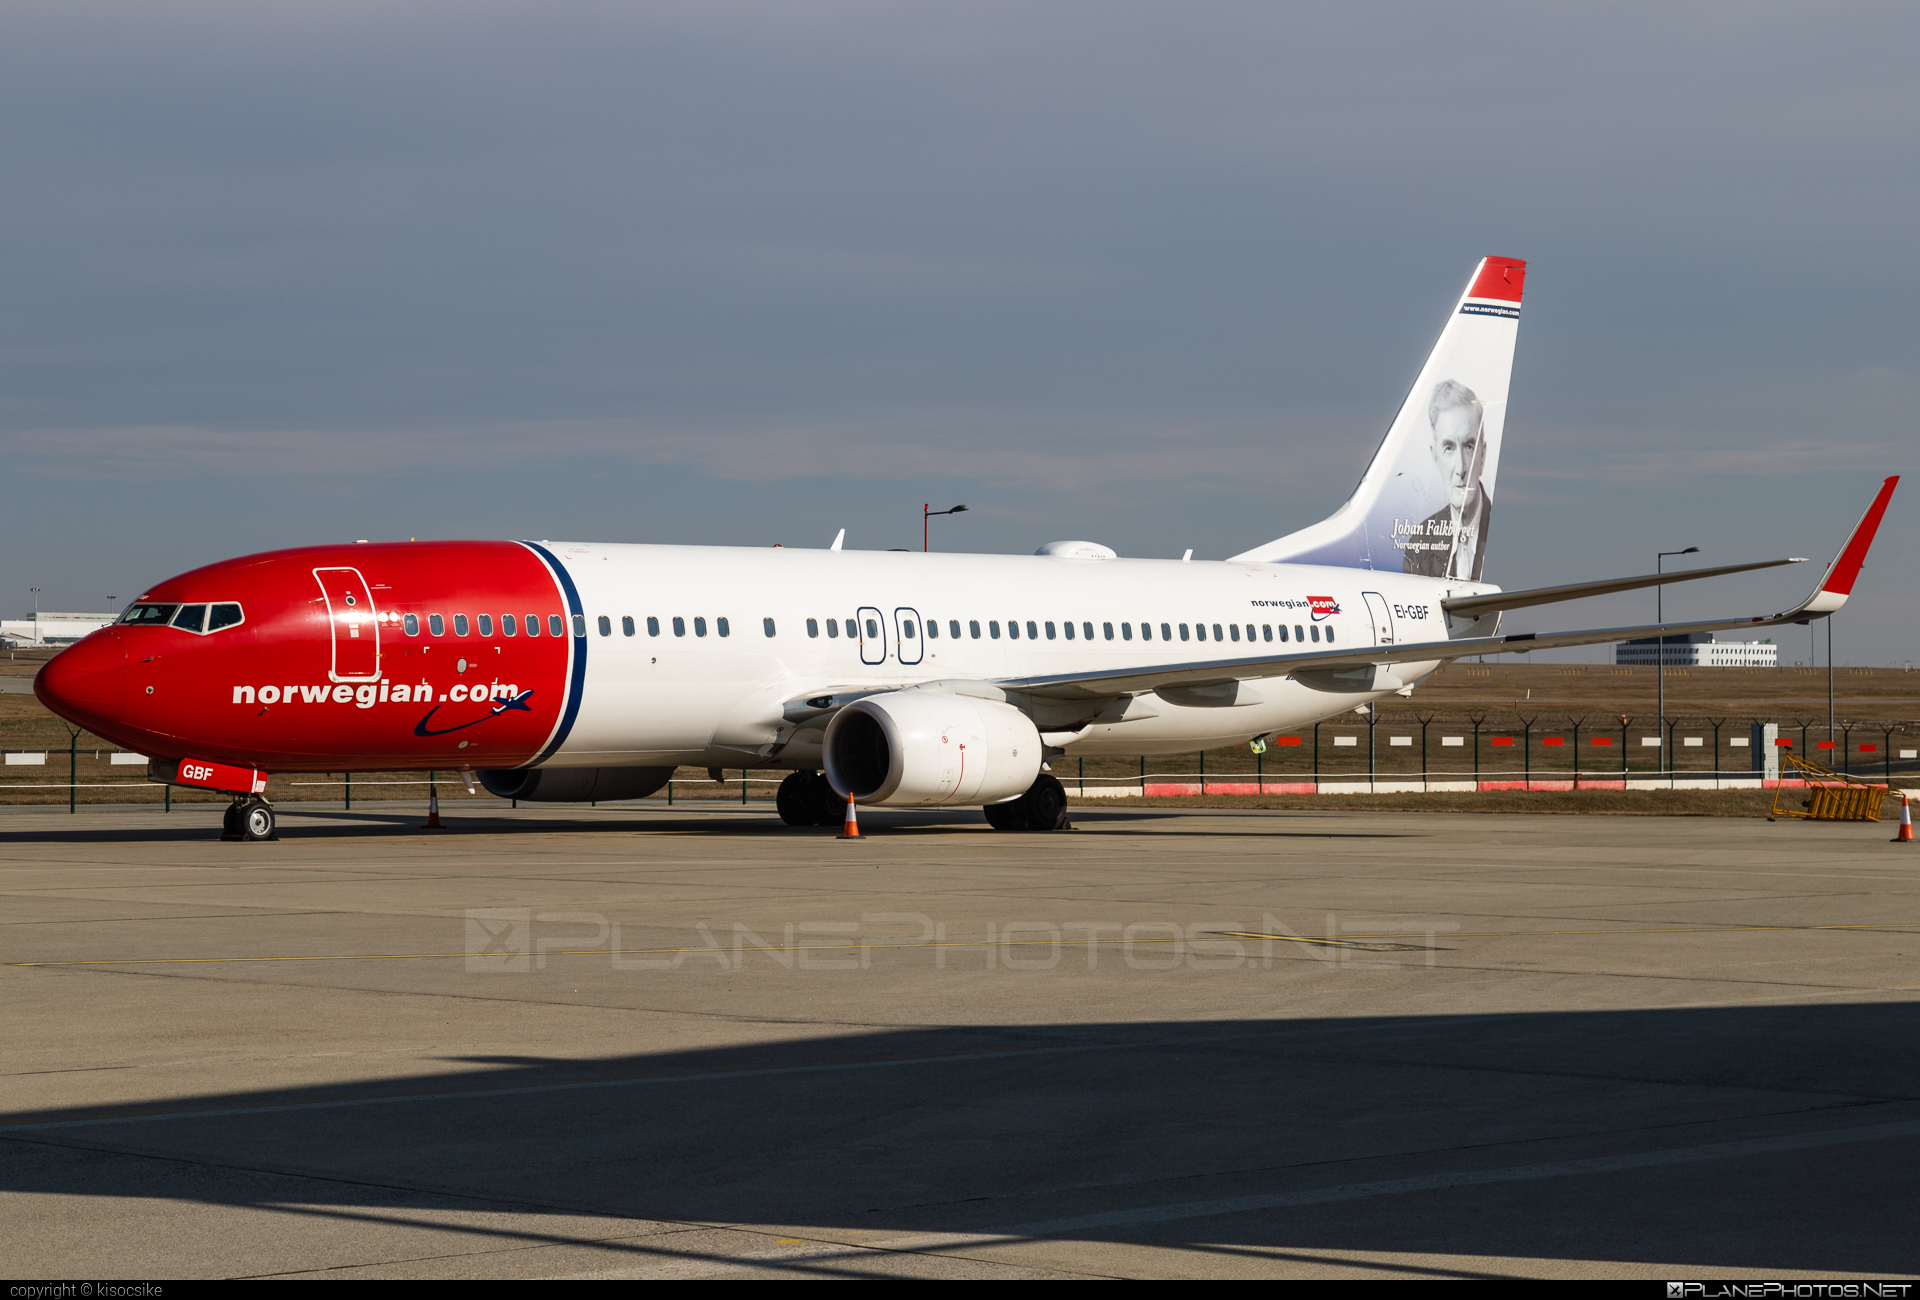 Boeing 737-800 - EI-GBF operated by Norwegian Air International #b737 #b737nextgen #b737ng #boeing #boeing737 #norwegian #norwegianair #norwegianairinternational